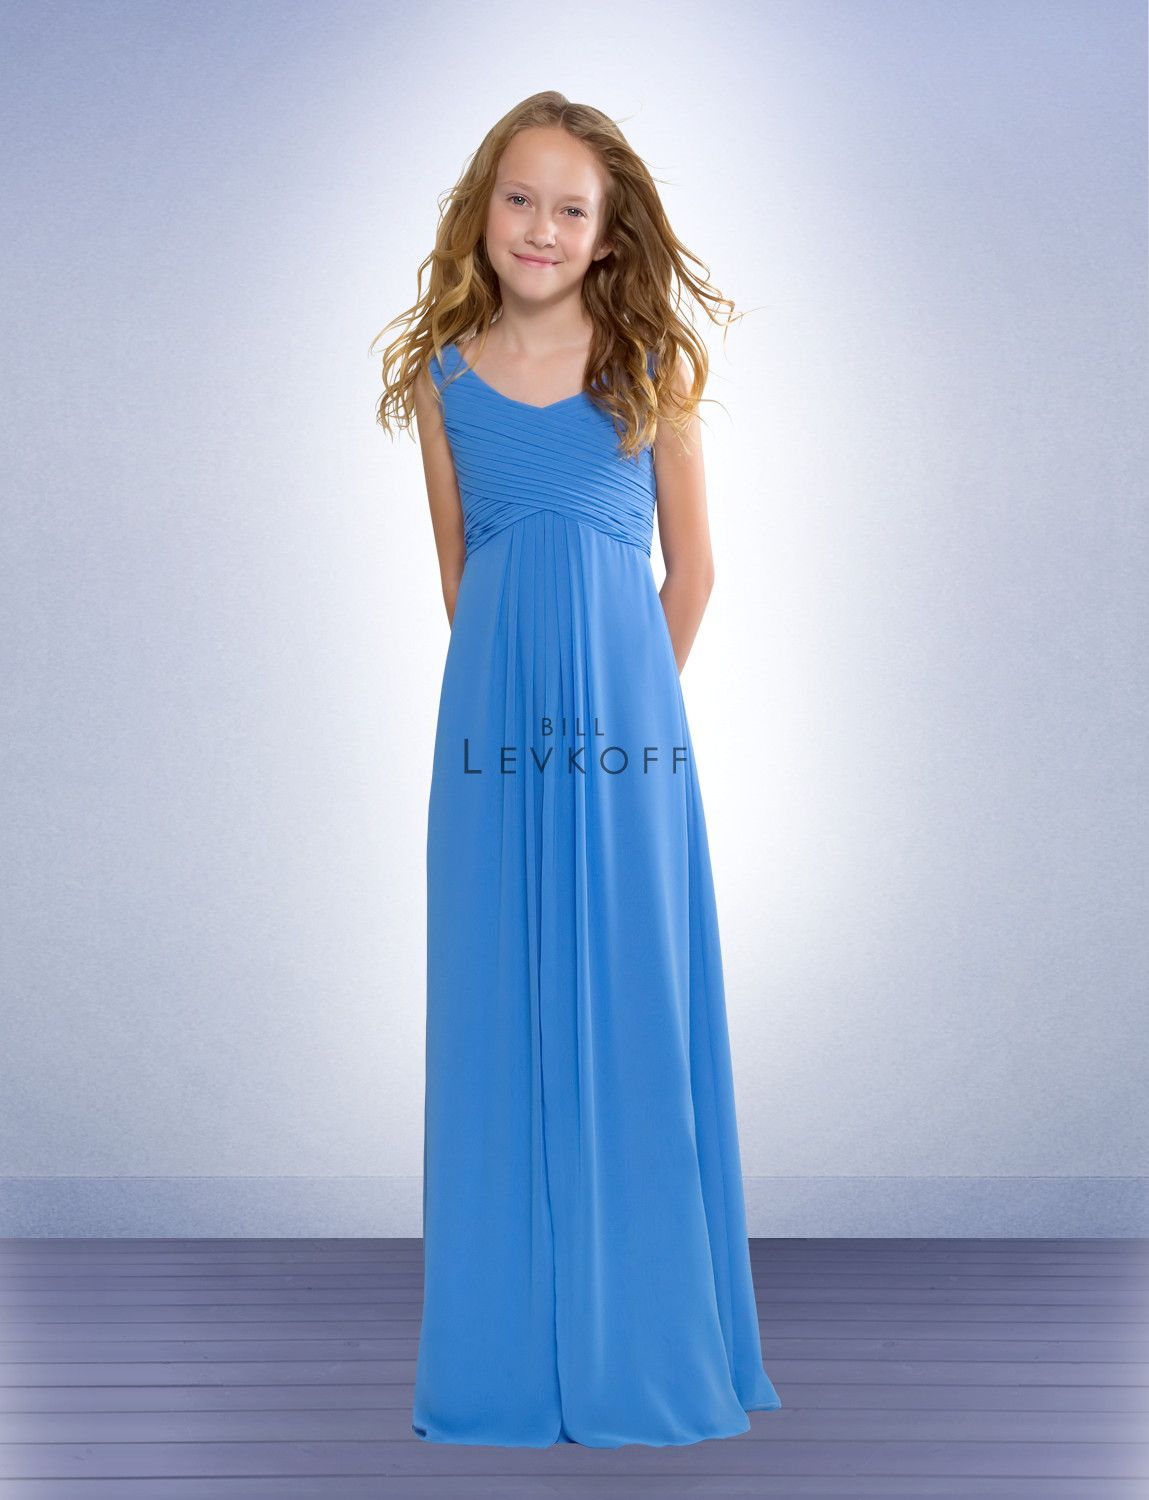 Junior bridesmaid dress option after we hem it up to tea length i may have found my babys dress junior bridesmaid dress of style 53702 flower girl and junior bridesmaids by bill levkoff ombrellifo Image collections